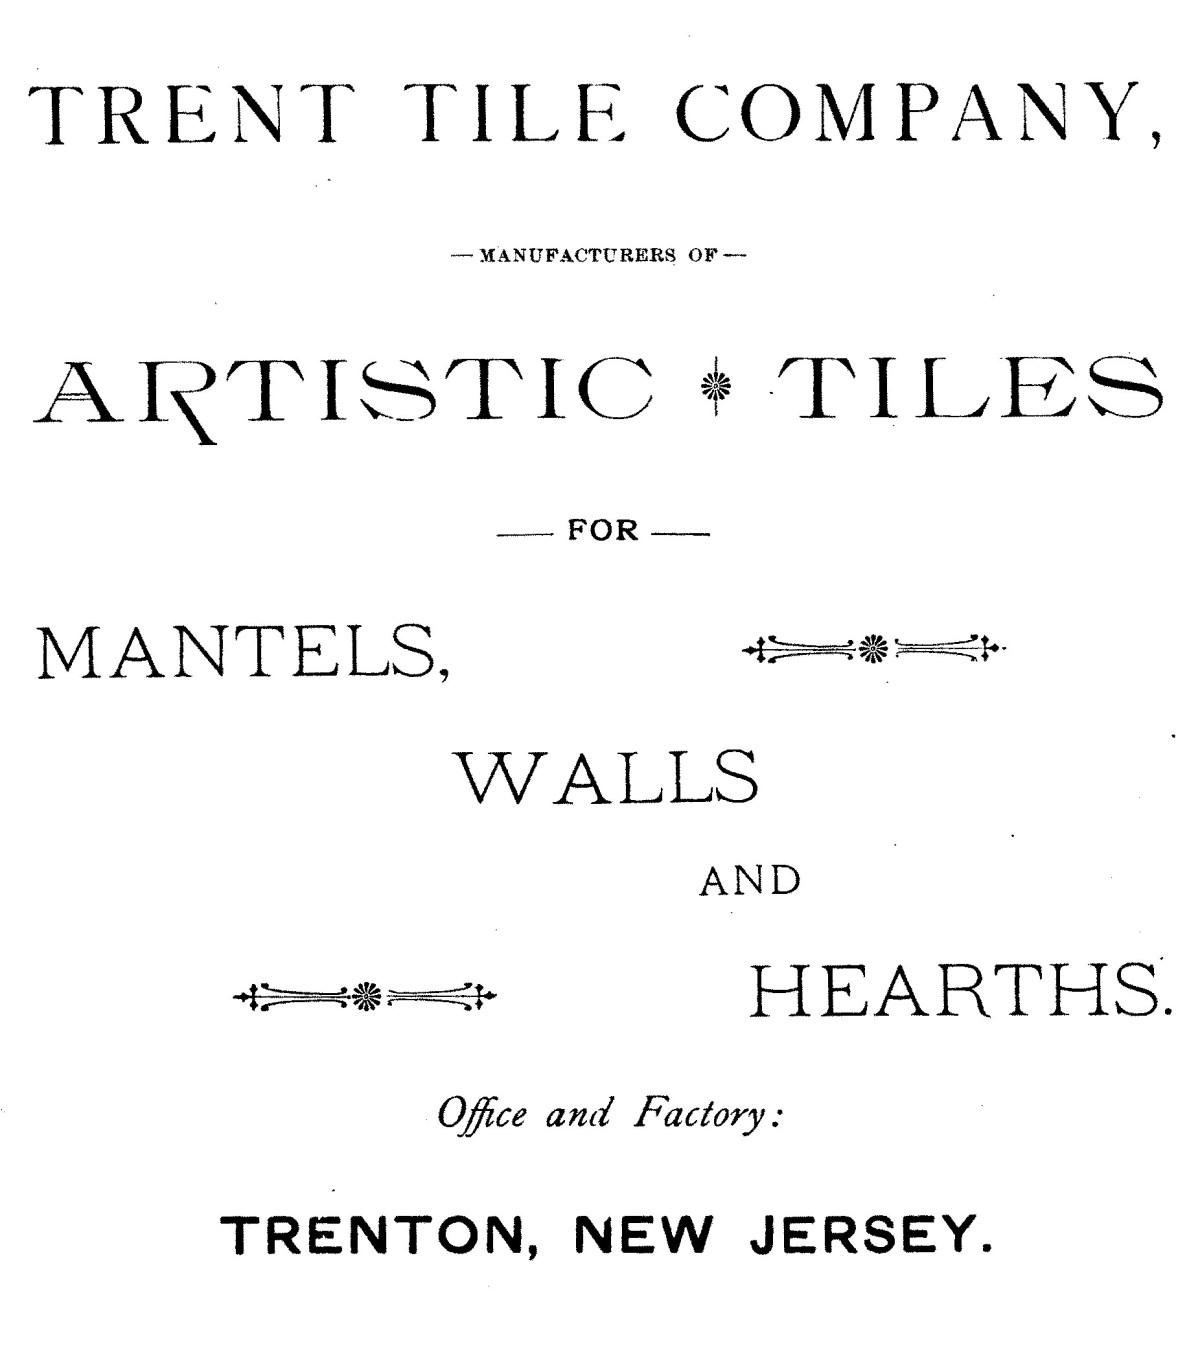 Trent Tile Company Advertisement